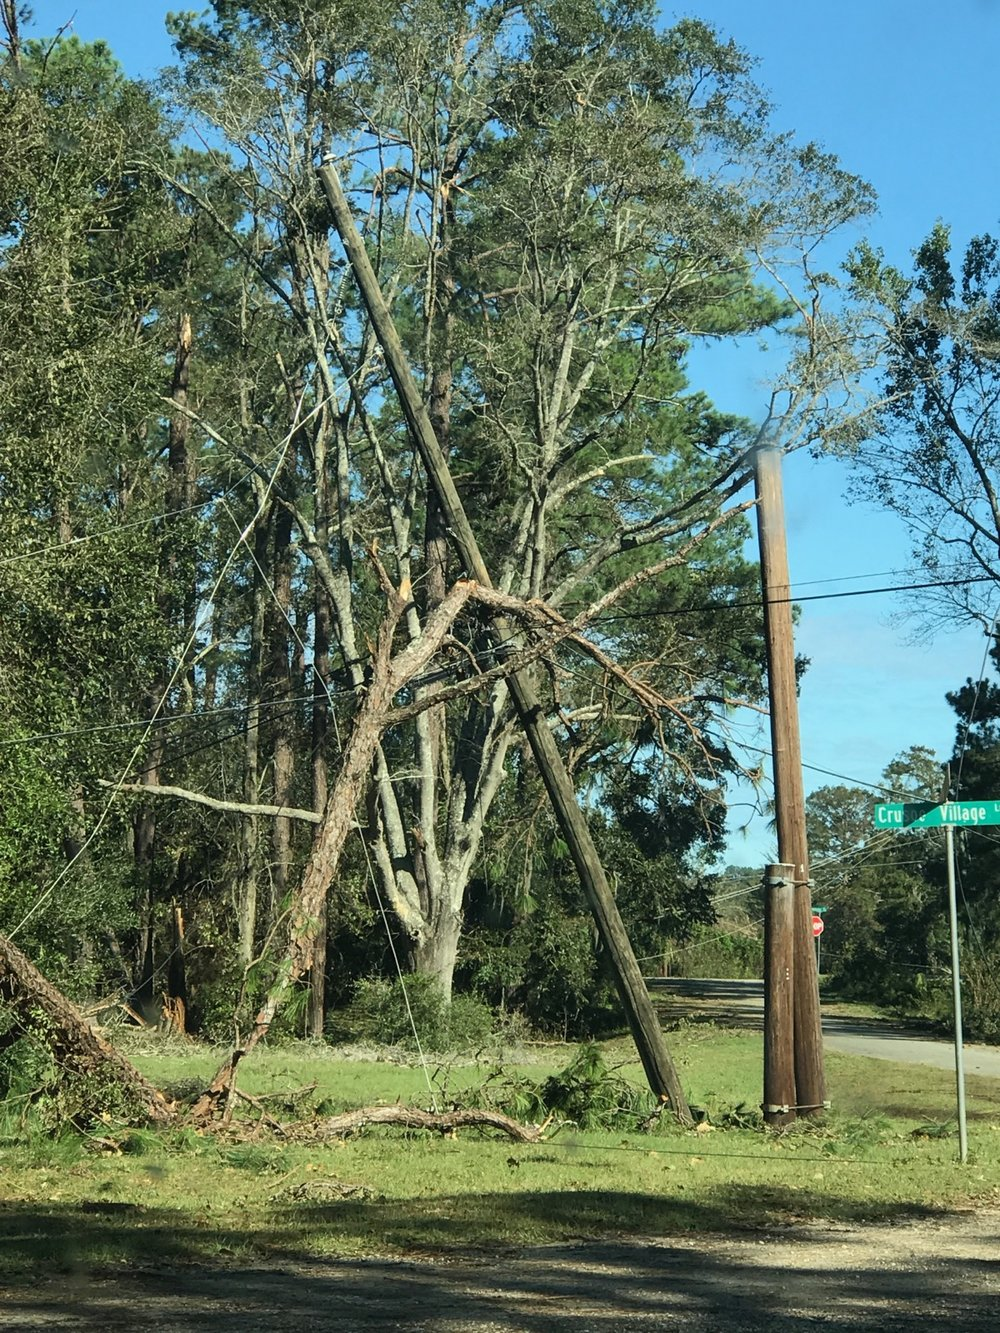 Scenes like this were commonplace in southwest Georgia following Hurricane Michael.